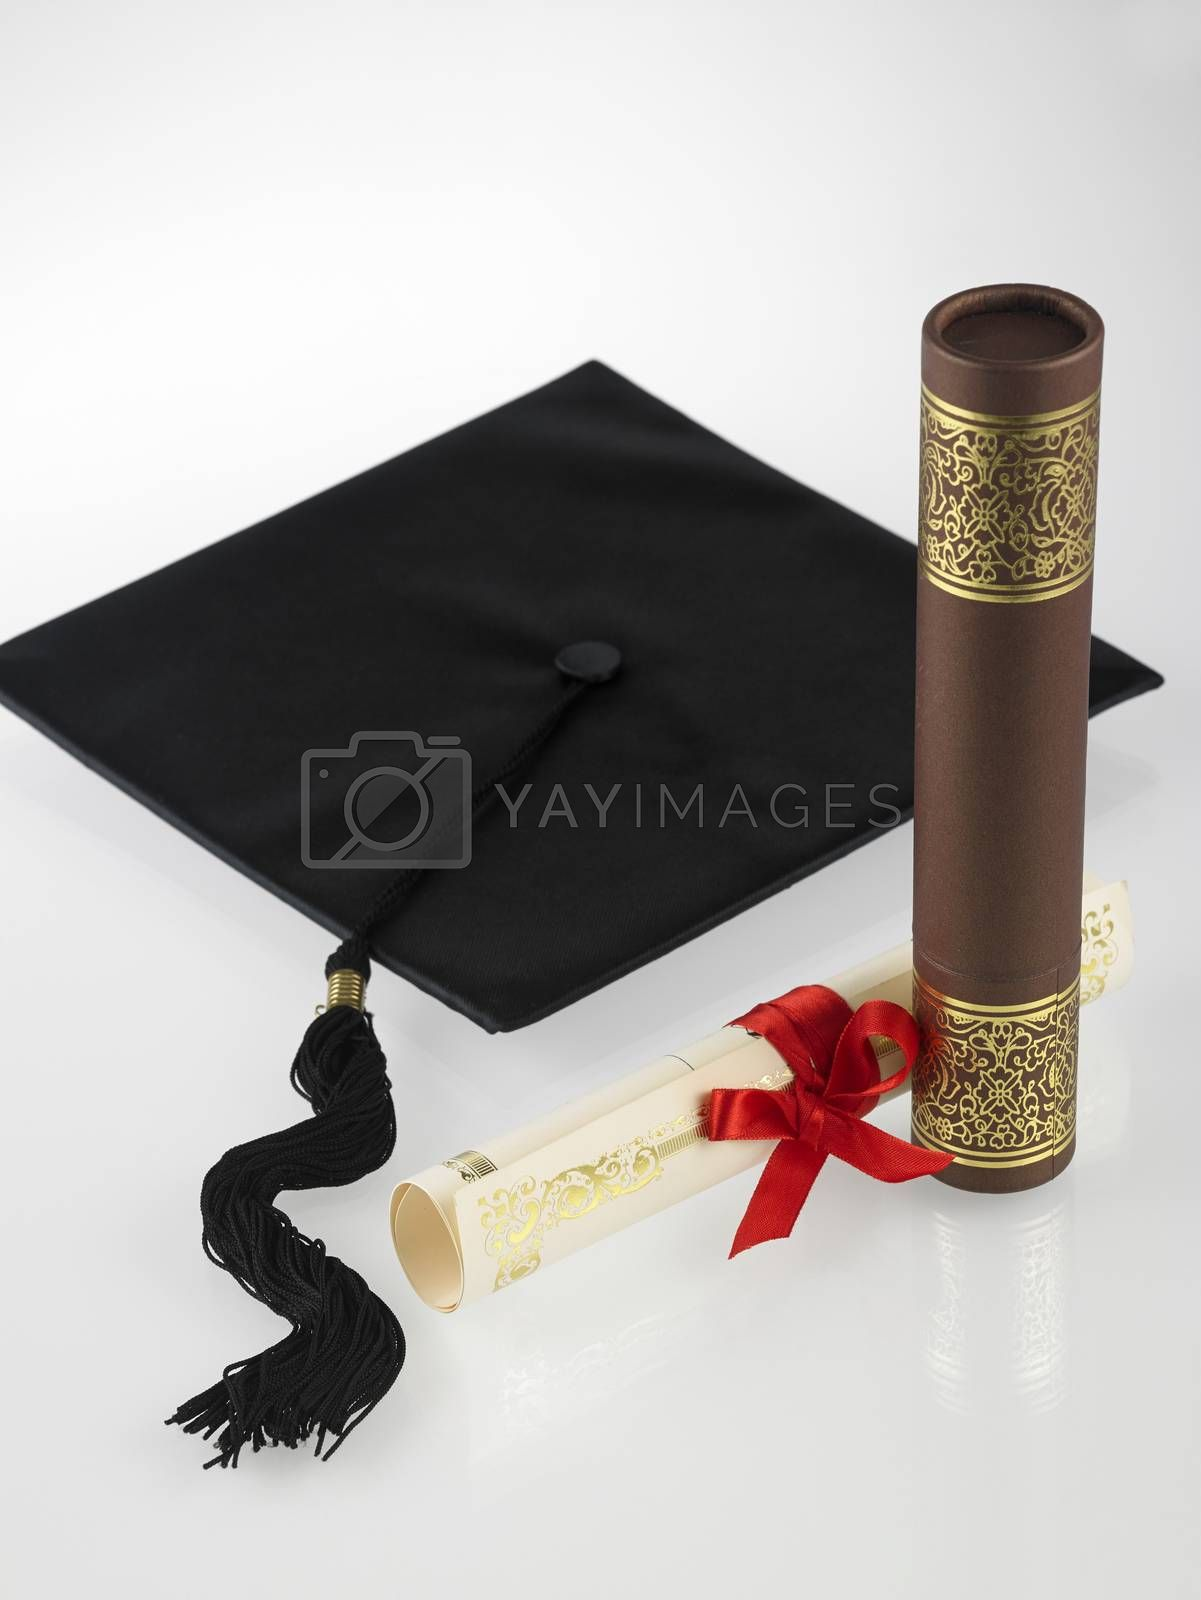 education icon,certificate,holder and mortar board